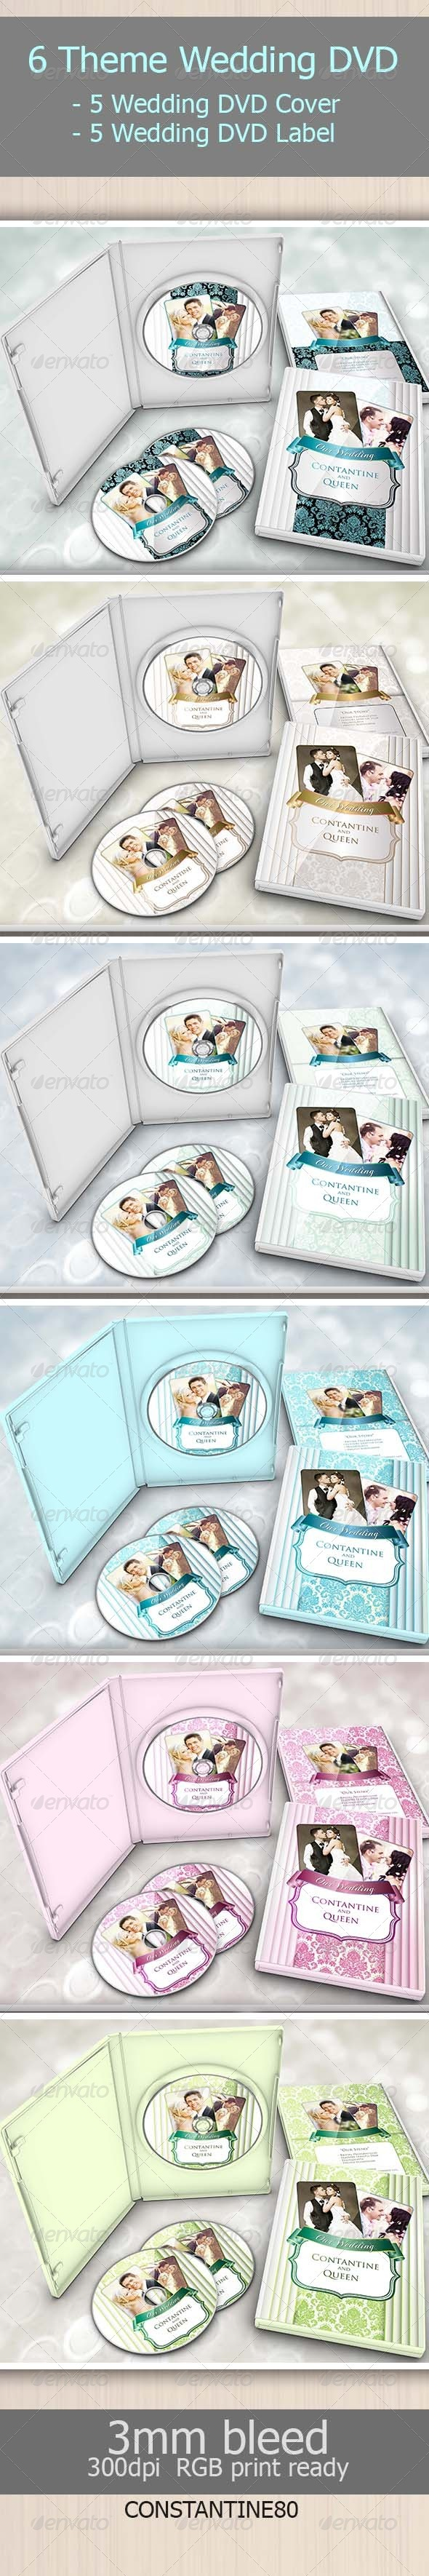 6 Theme Wedding Dvd